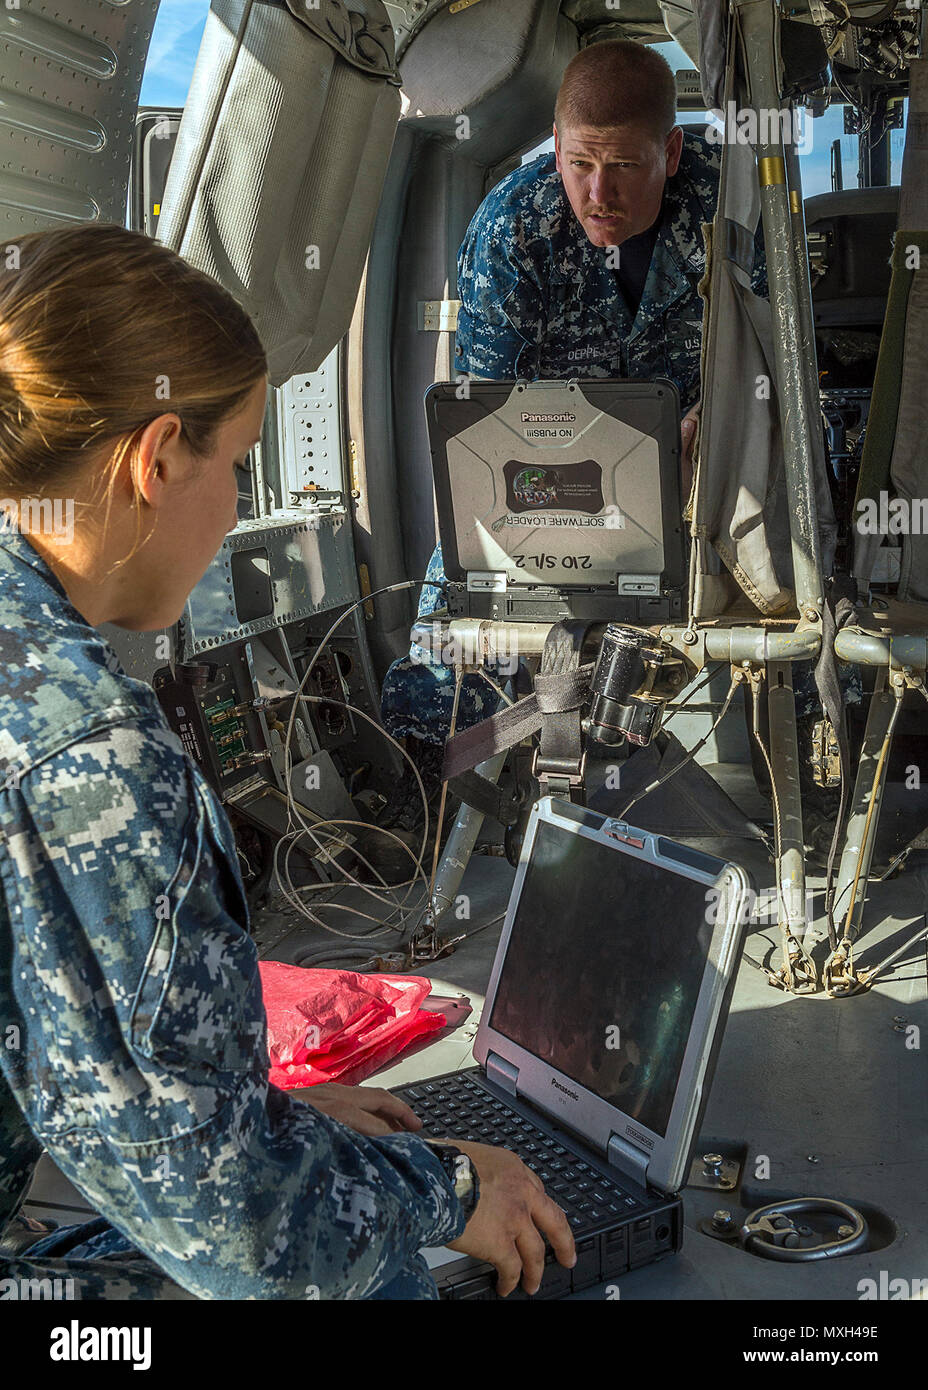 """Petty Officer 3rd Class Angela Bobst and Petty Officer 2nd Class Ryan Deppe assigned to Helicopter Sea Combat Squadron (HSC) 21 """"Blackjacks"""", review schematics on a toughbook laptop on a MH-60S Seahawk, while the helicopter is under regular maintenance check-ups on the flight line in San Diego, Nov. 4, 2016. HSC-21's mission is to provide all-weather, vertical lift, and combat-ready aircraft and crews to U.S. 7th and 5th Fleet areas of responsibility. U.S. Navy Combat Camera photo by Petty Officer 1st Class Bryan Ilyankoff - Stock Image"""